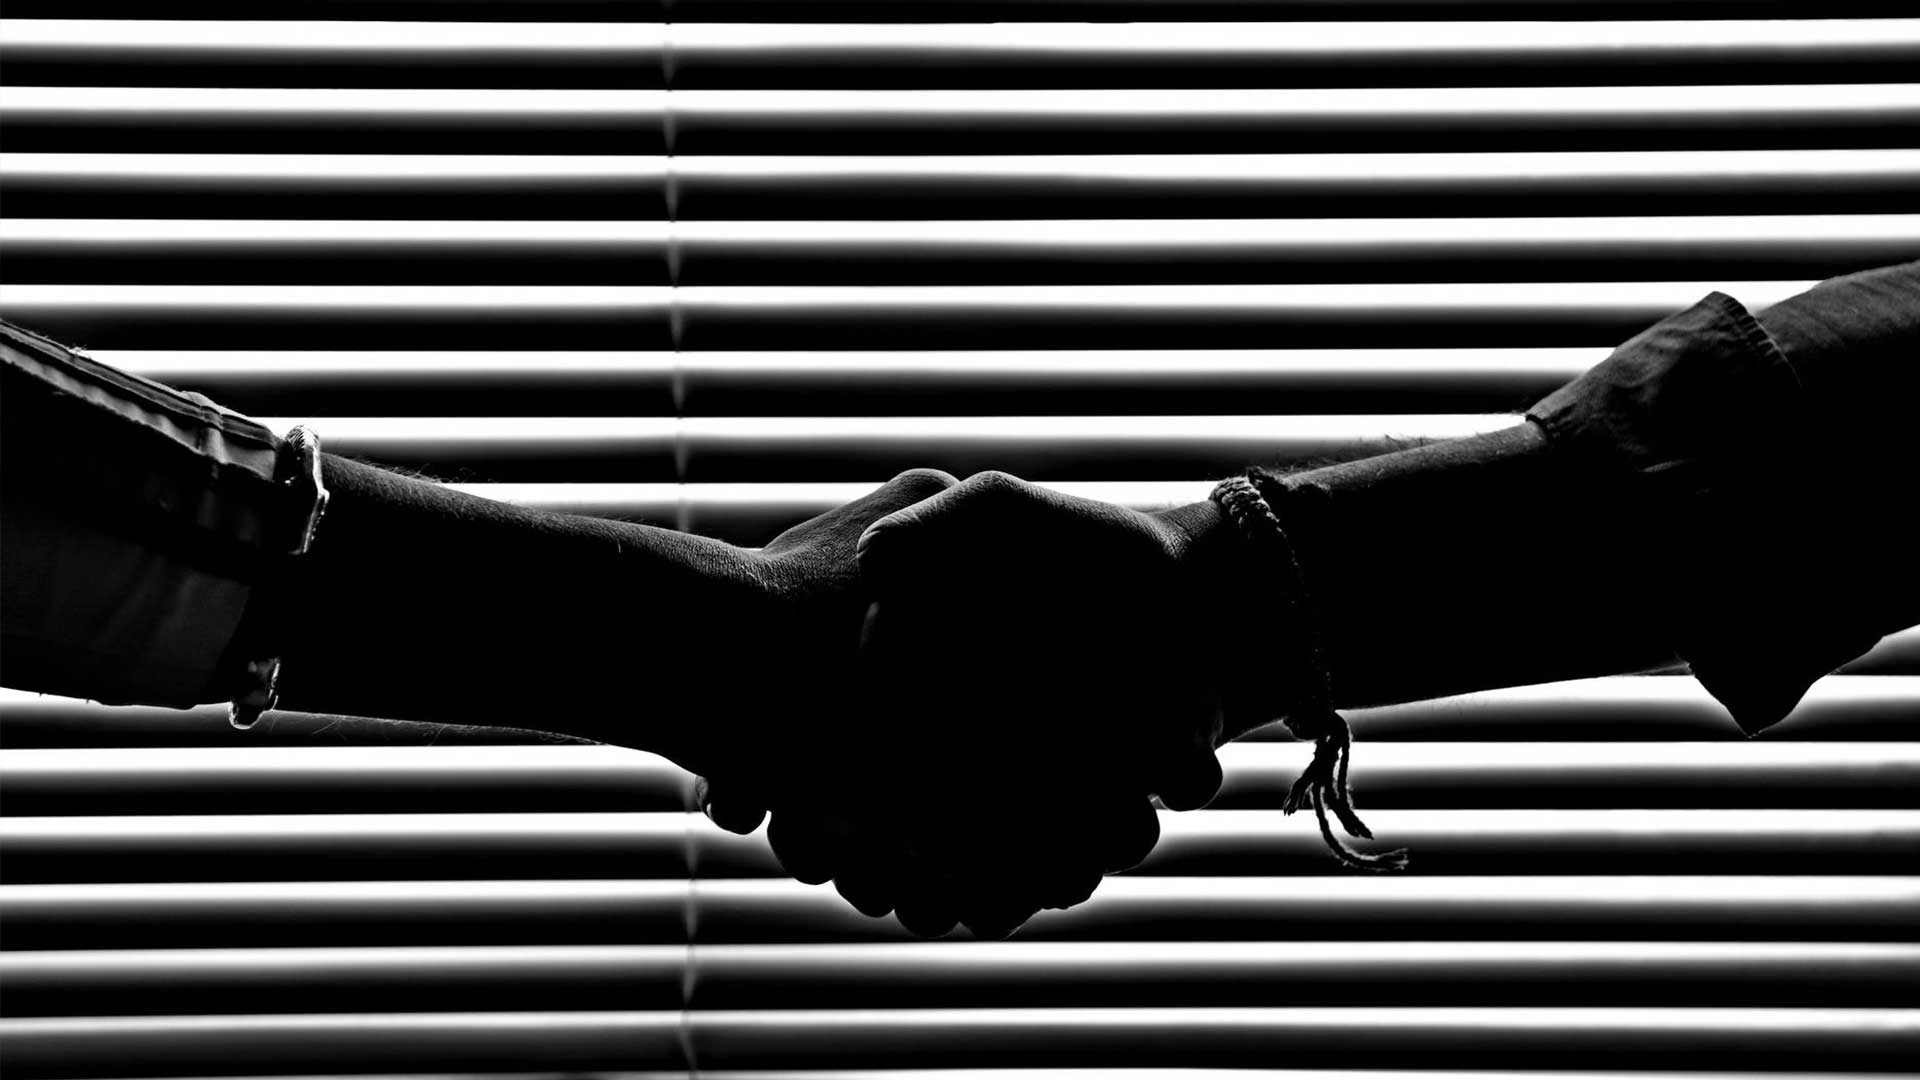 Five ways you can build trust in your company through communication